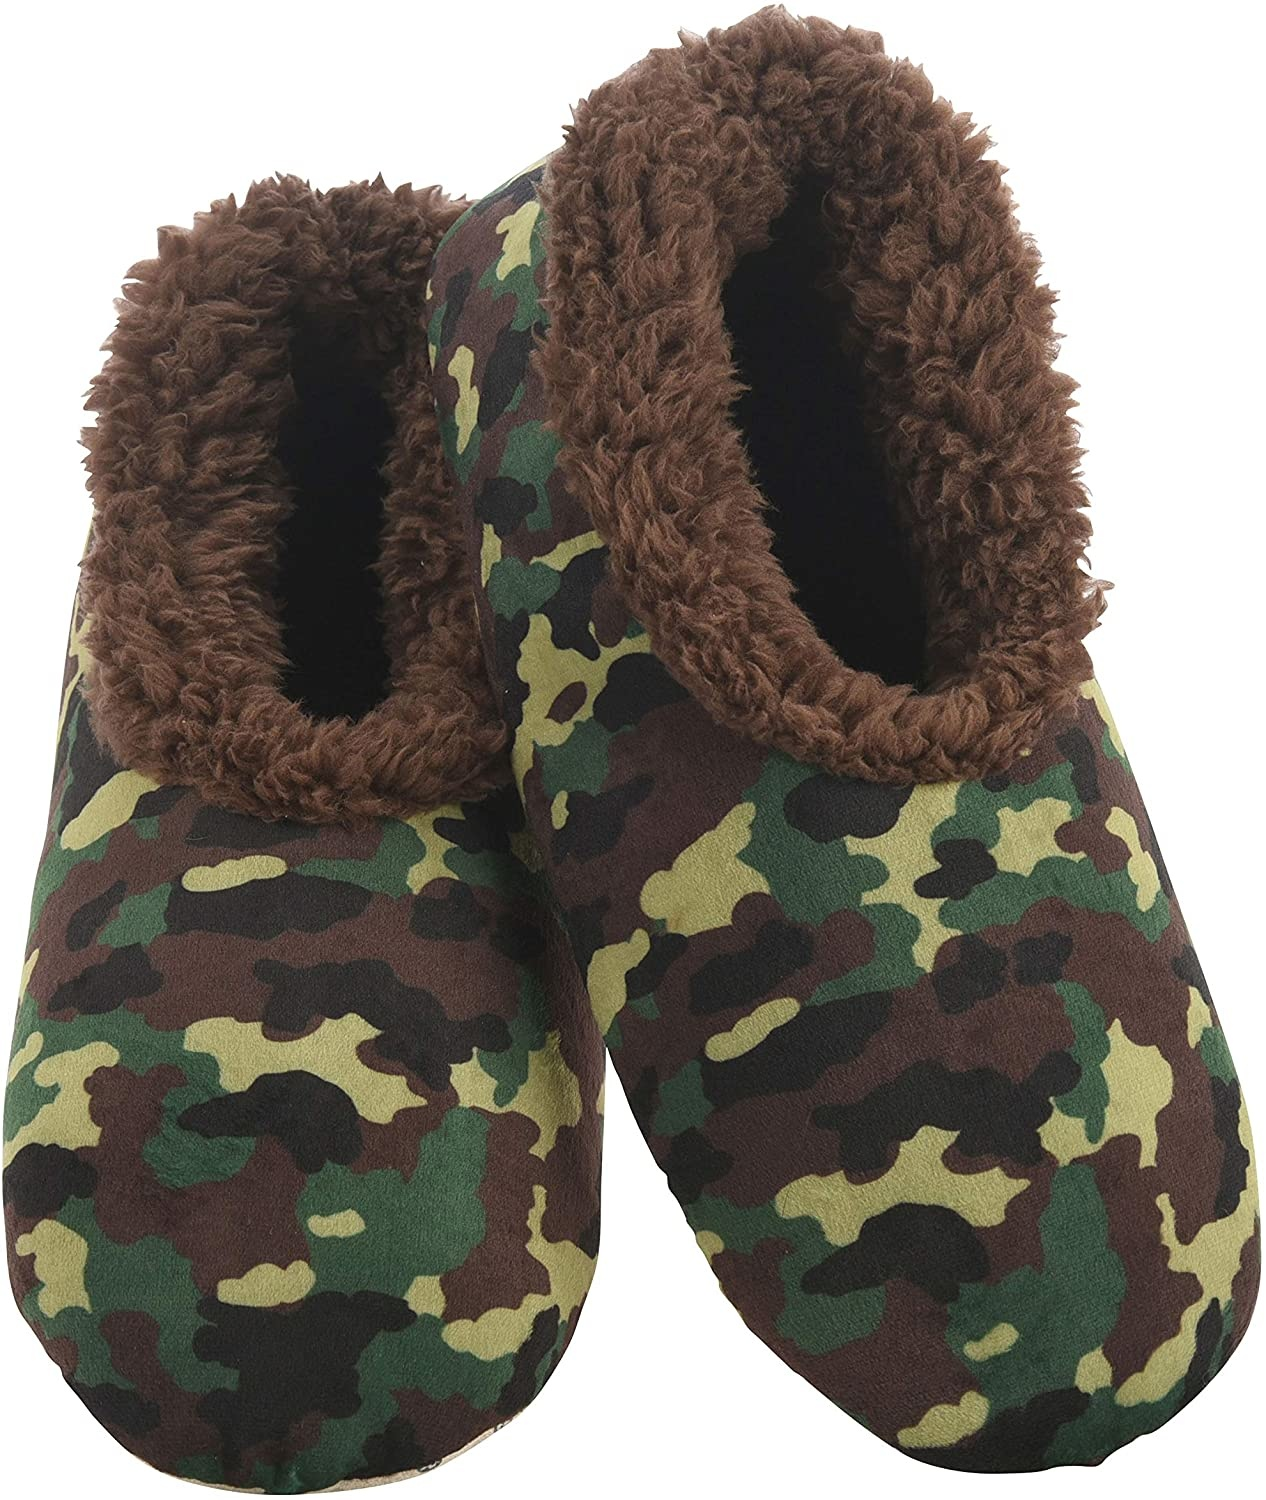 Snoozies Camo Snoozies